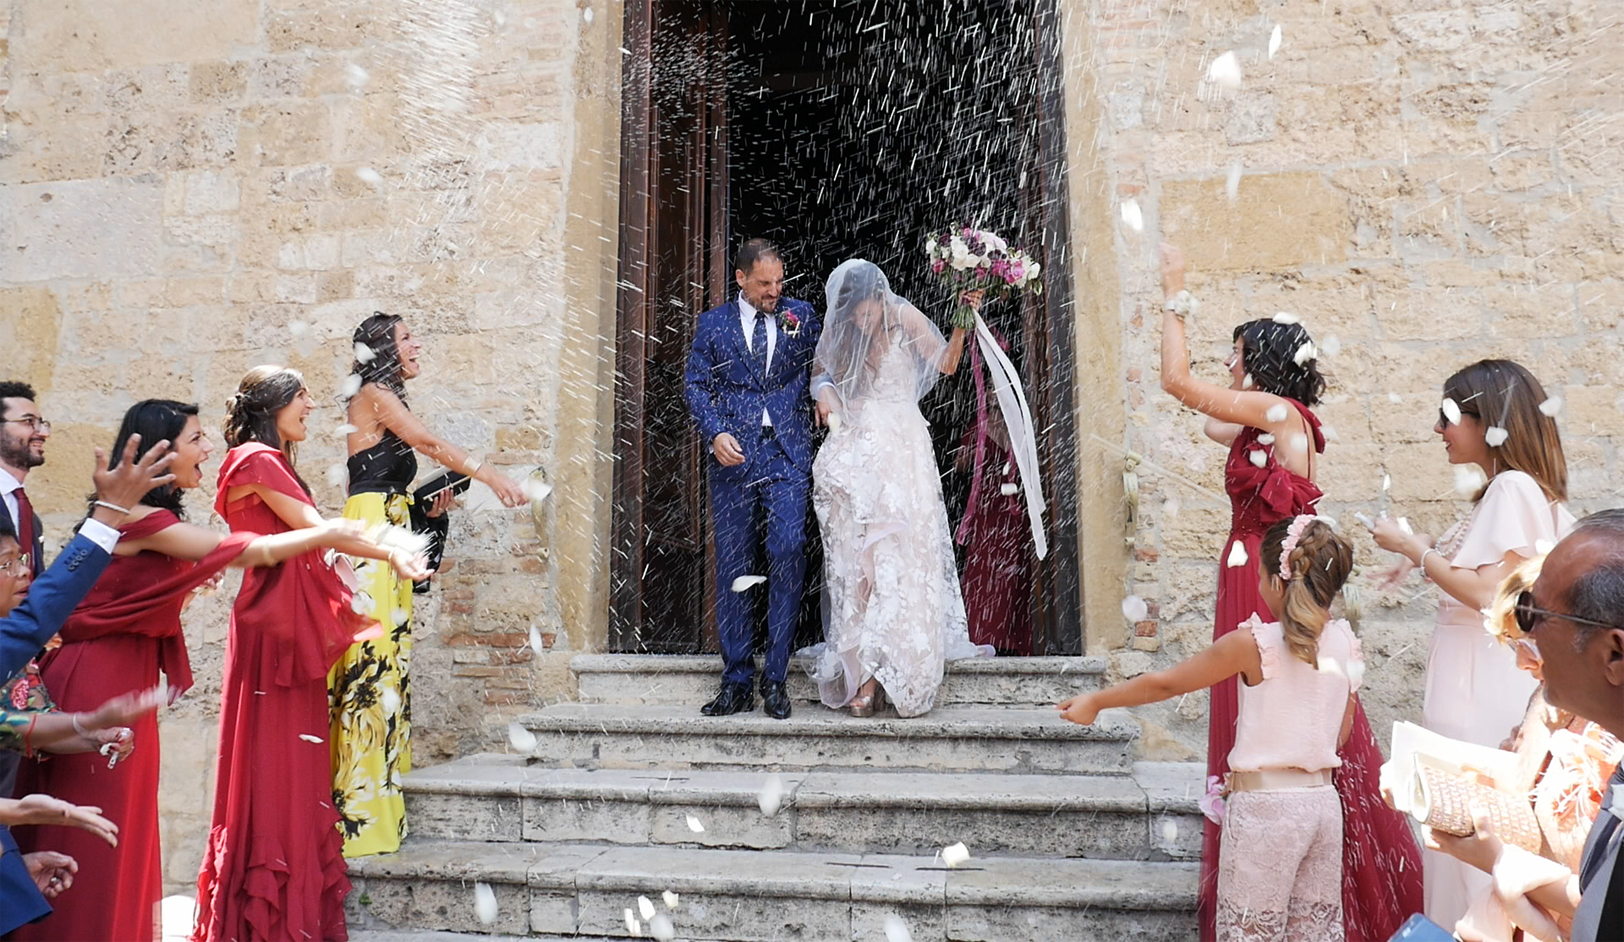 wedding-in-san-gimignano-bride-groom-rise.jpg